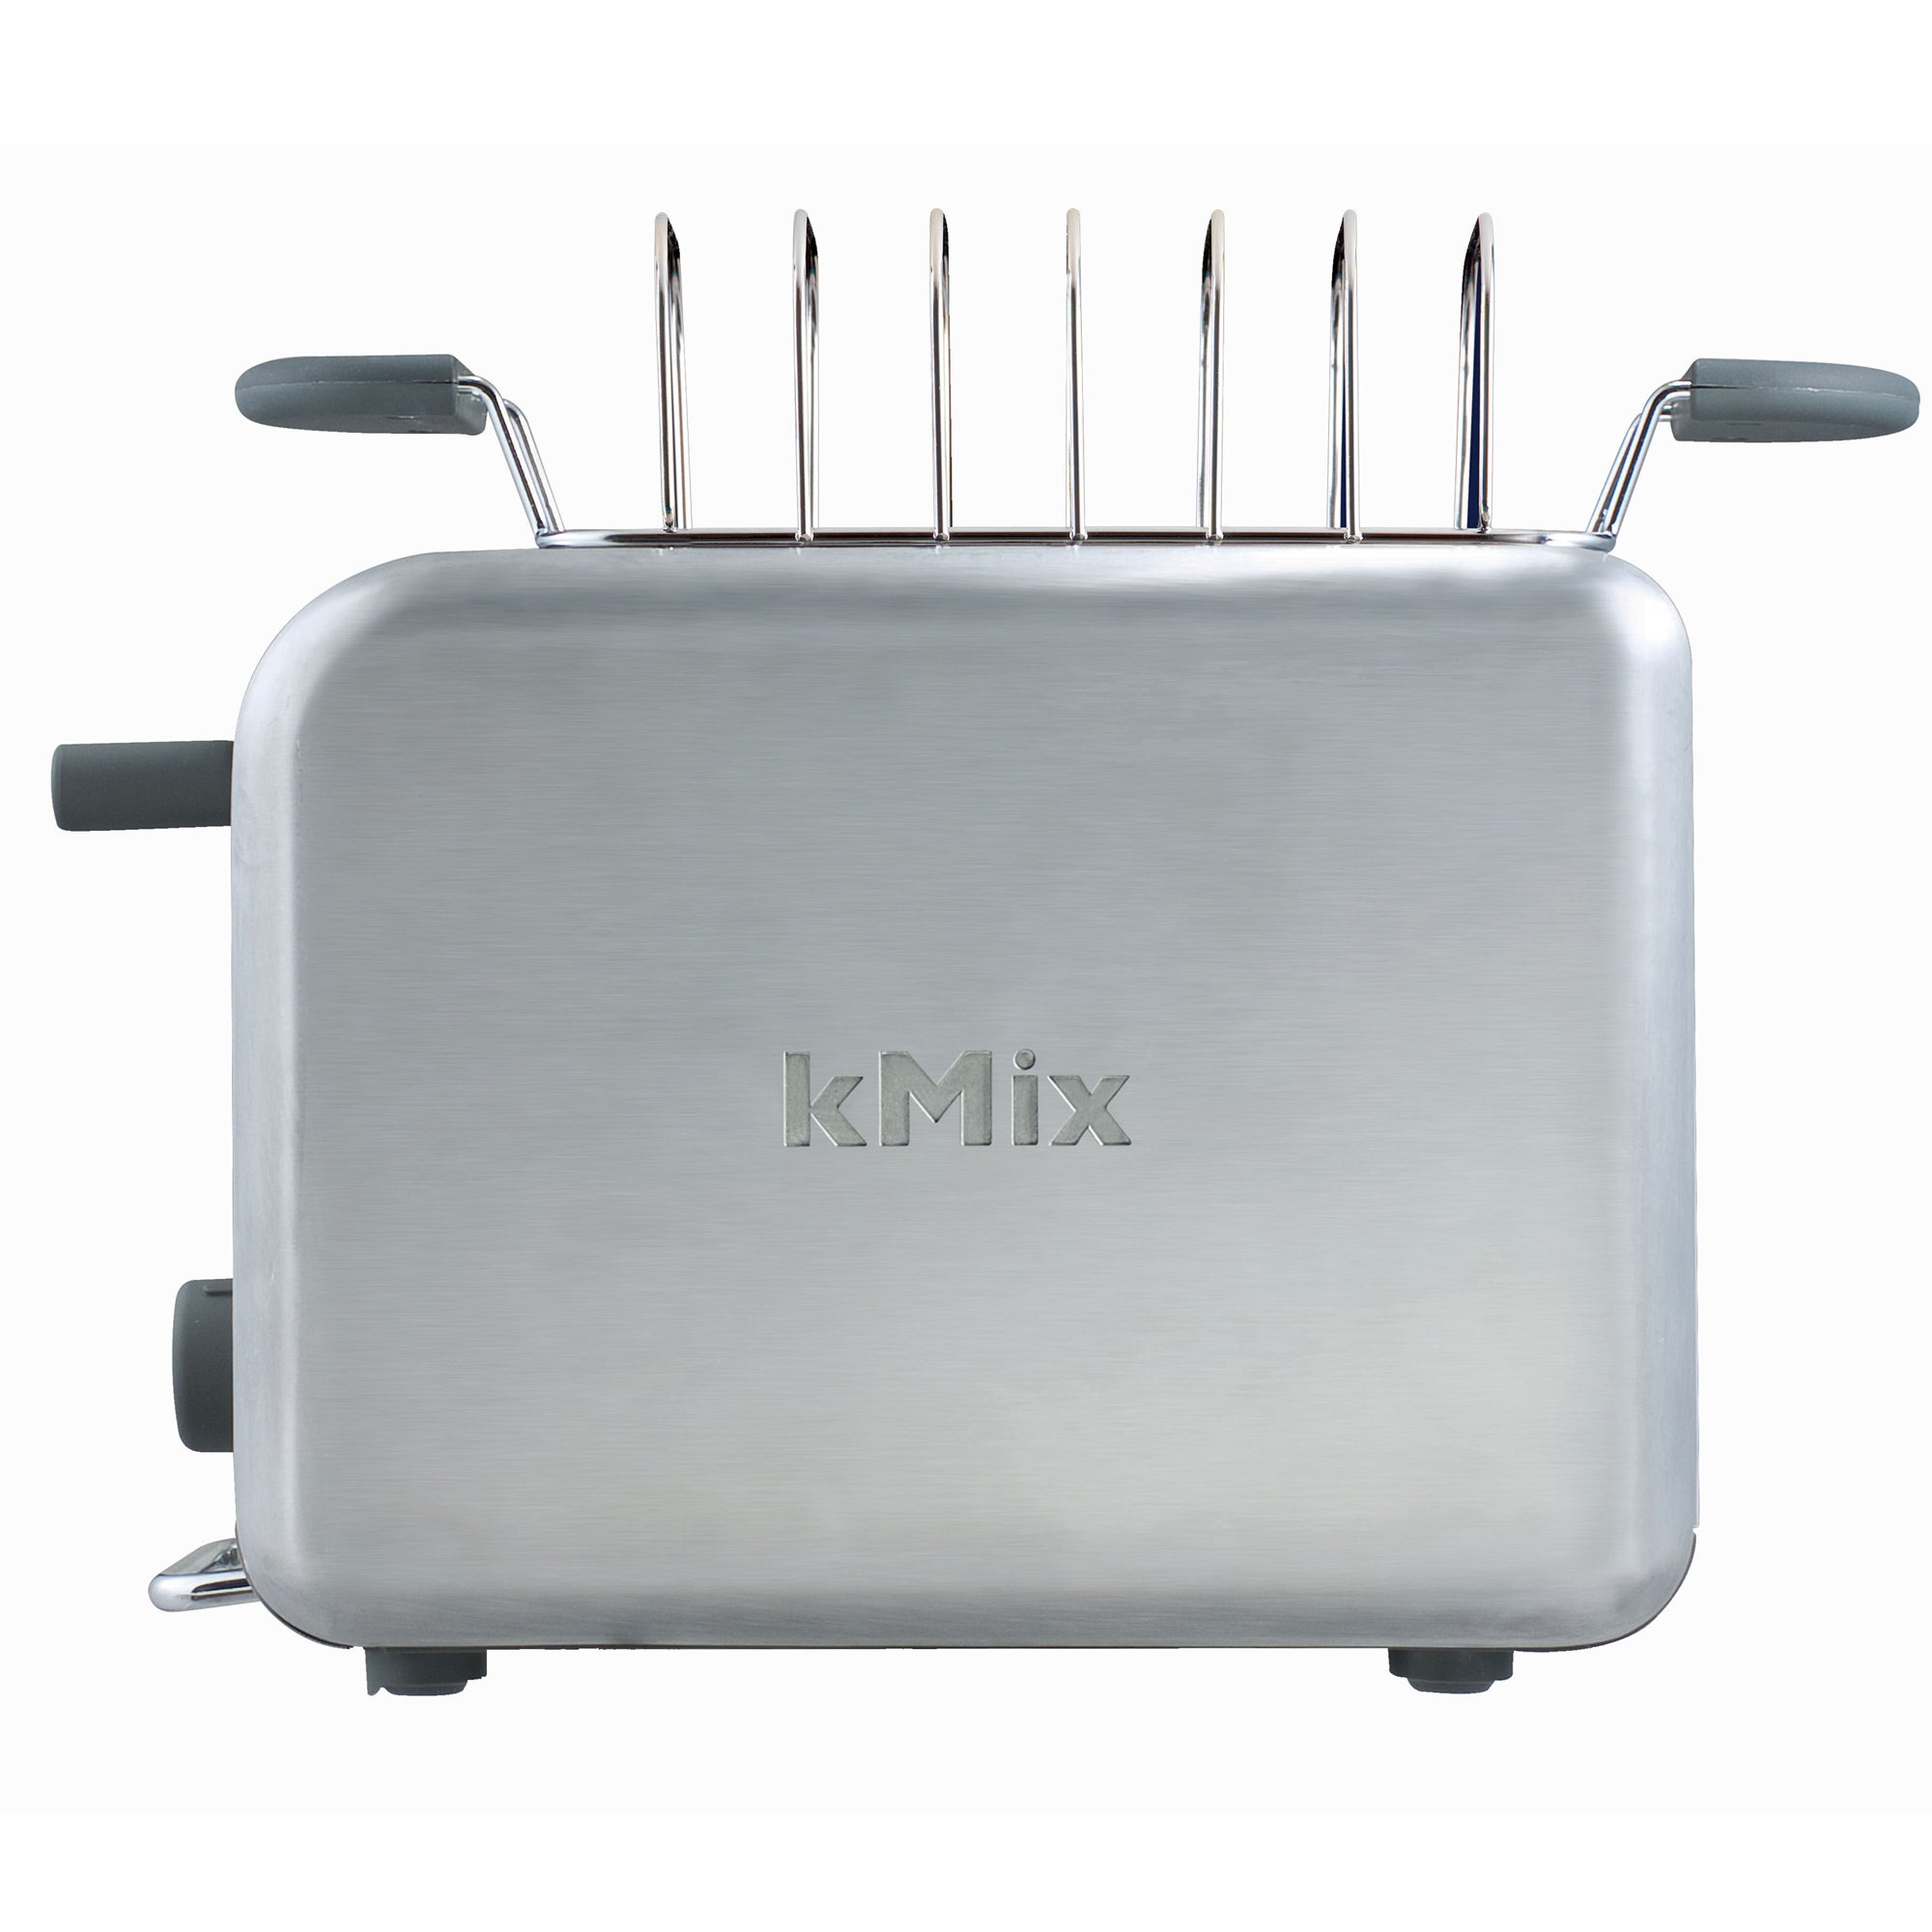 DeLonghi kMIX 2-slice Stainless Steel Toaster